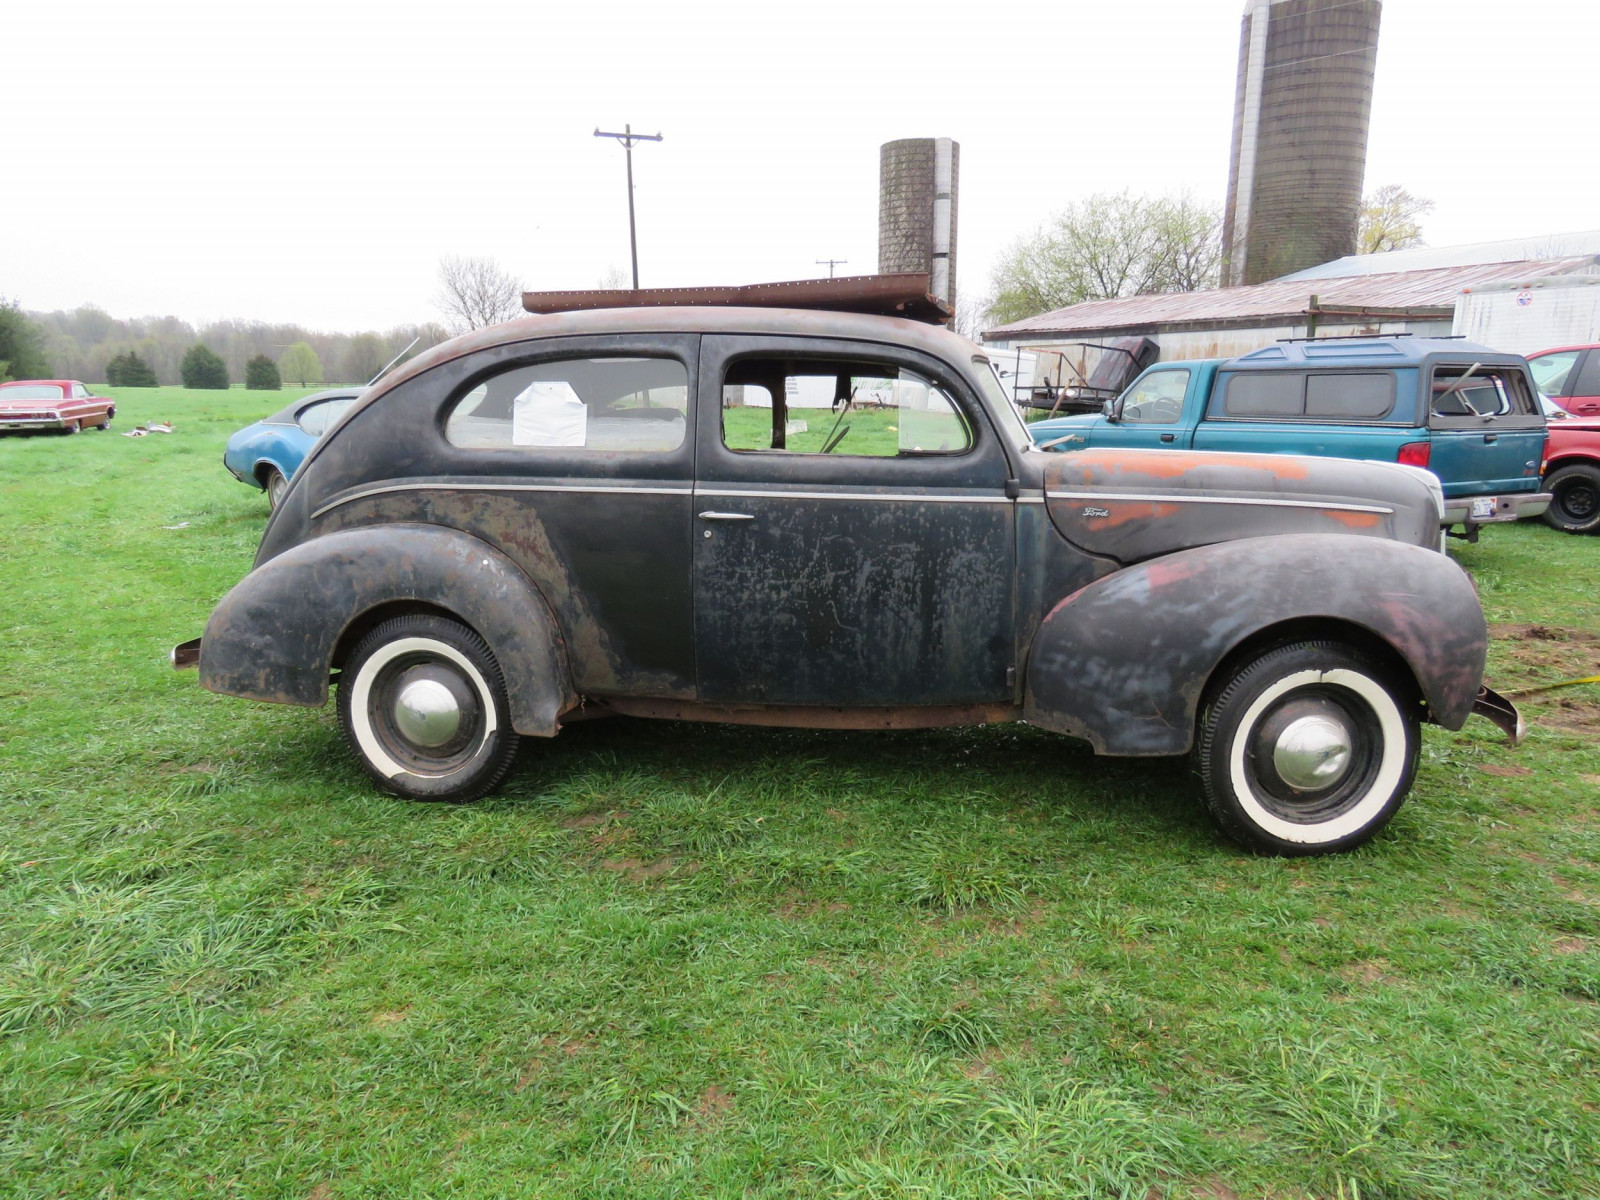 1940 Ford 2dr Sedan for Rod or Restore - Image 4